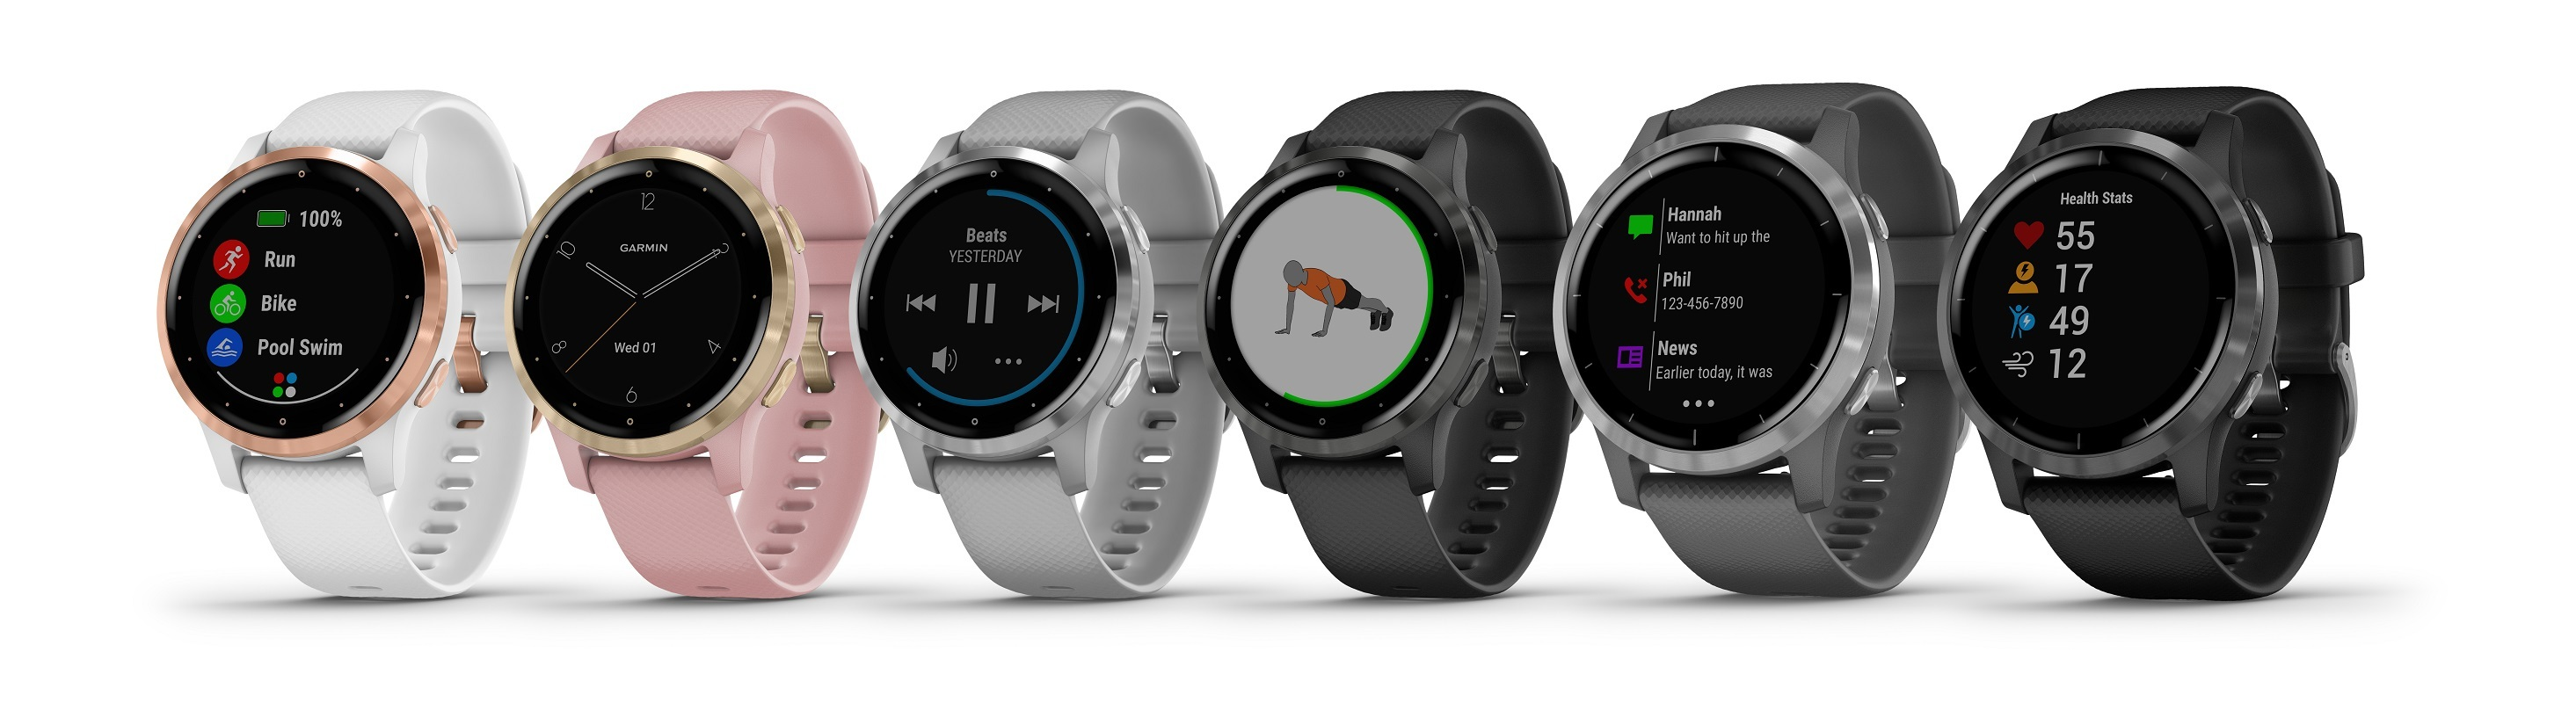 Garmin Vivoactive 4 Colors